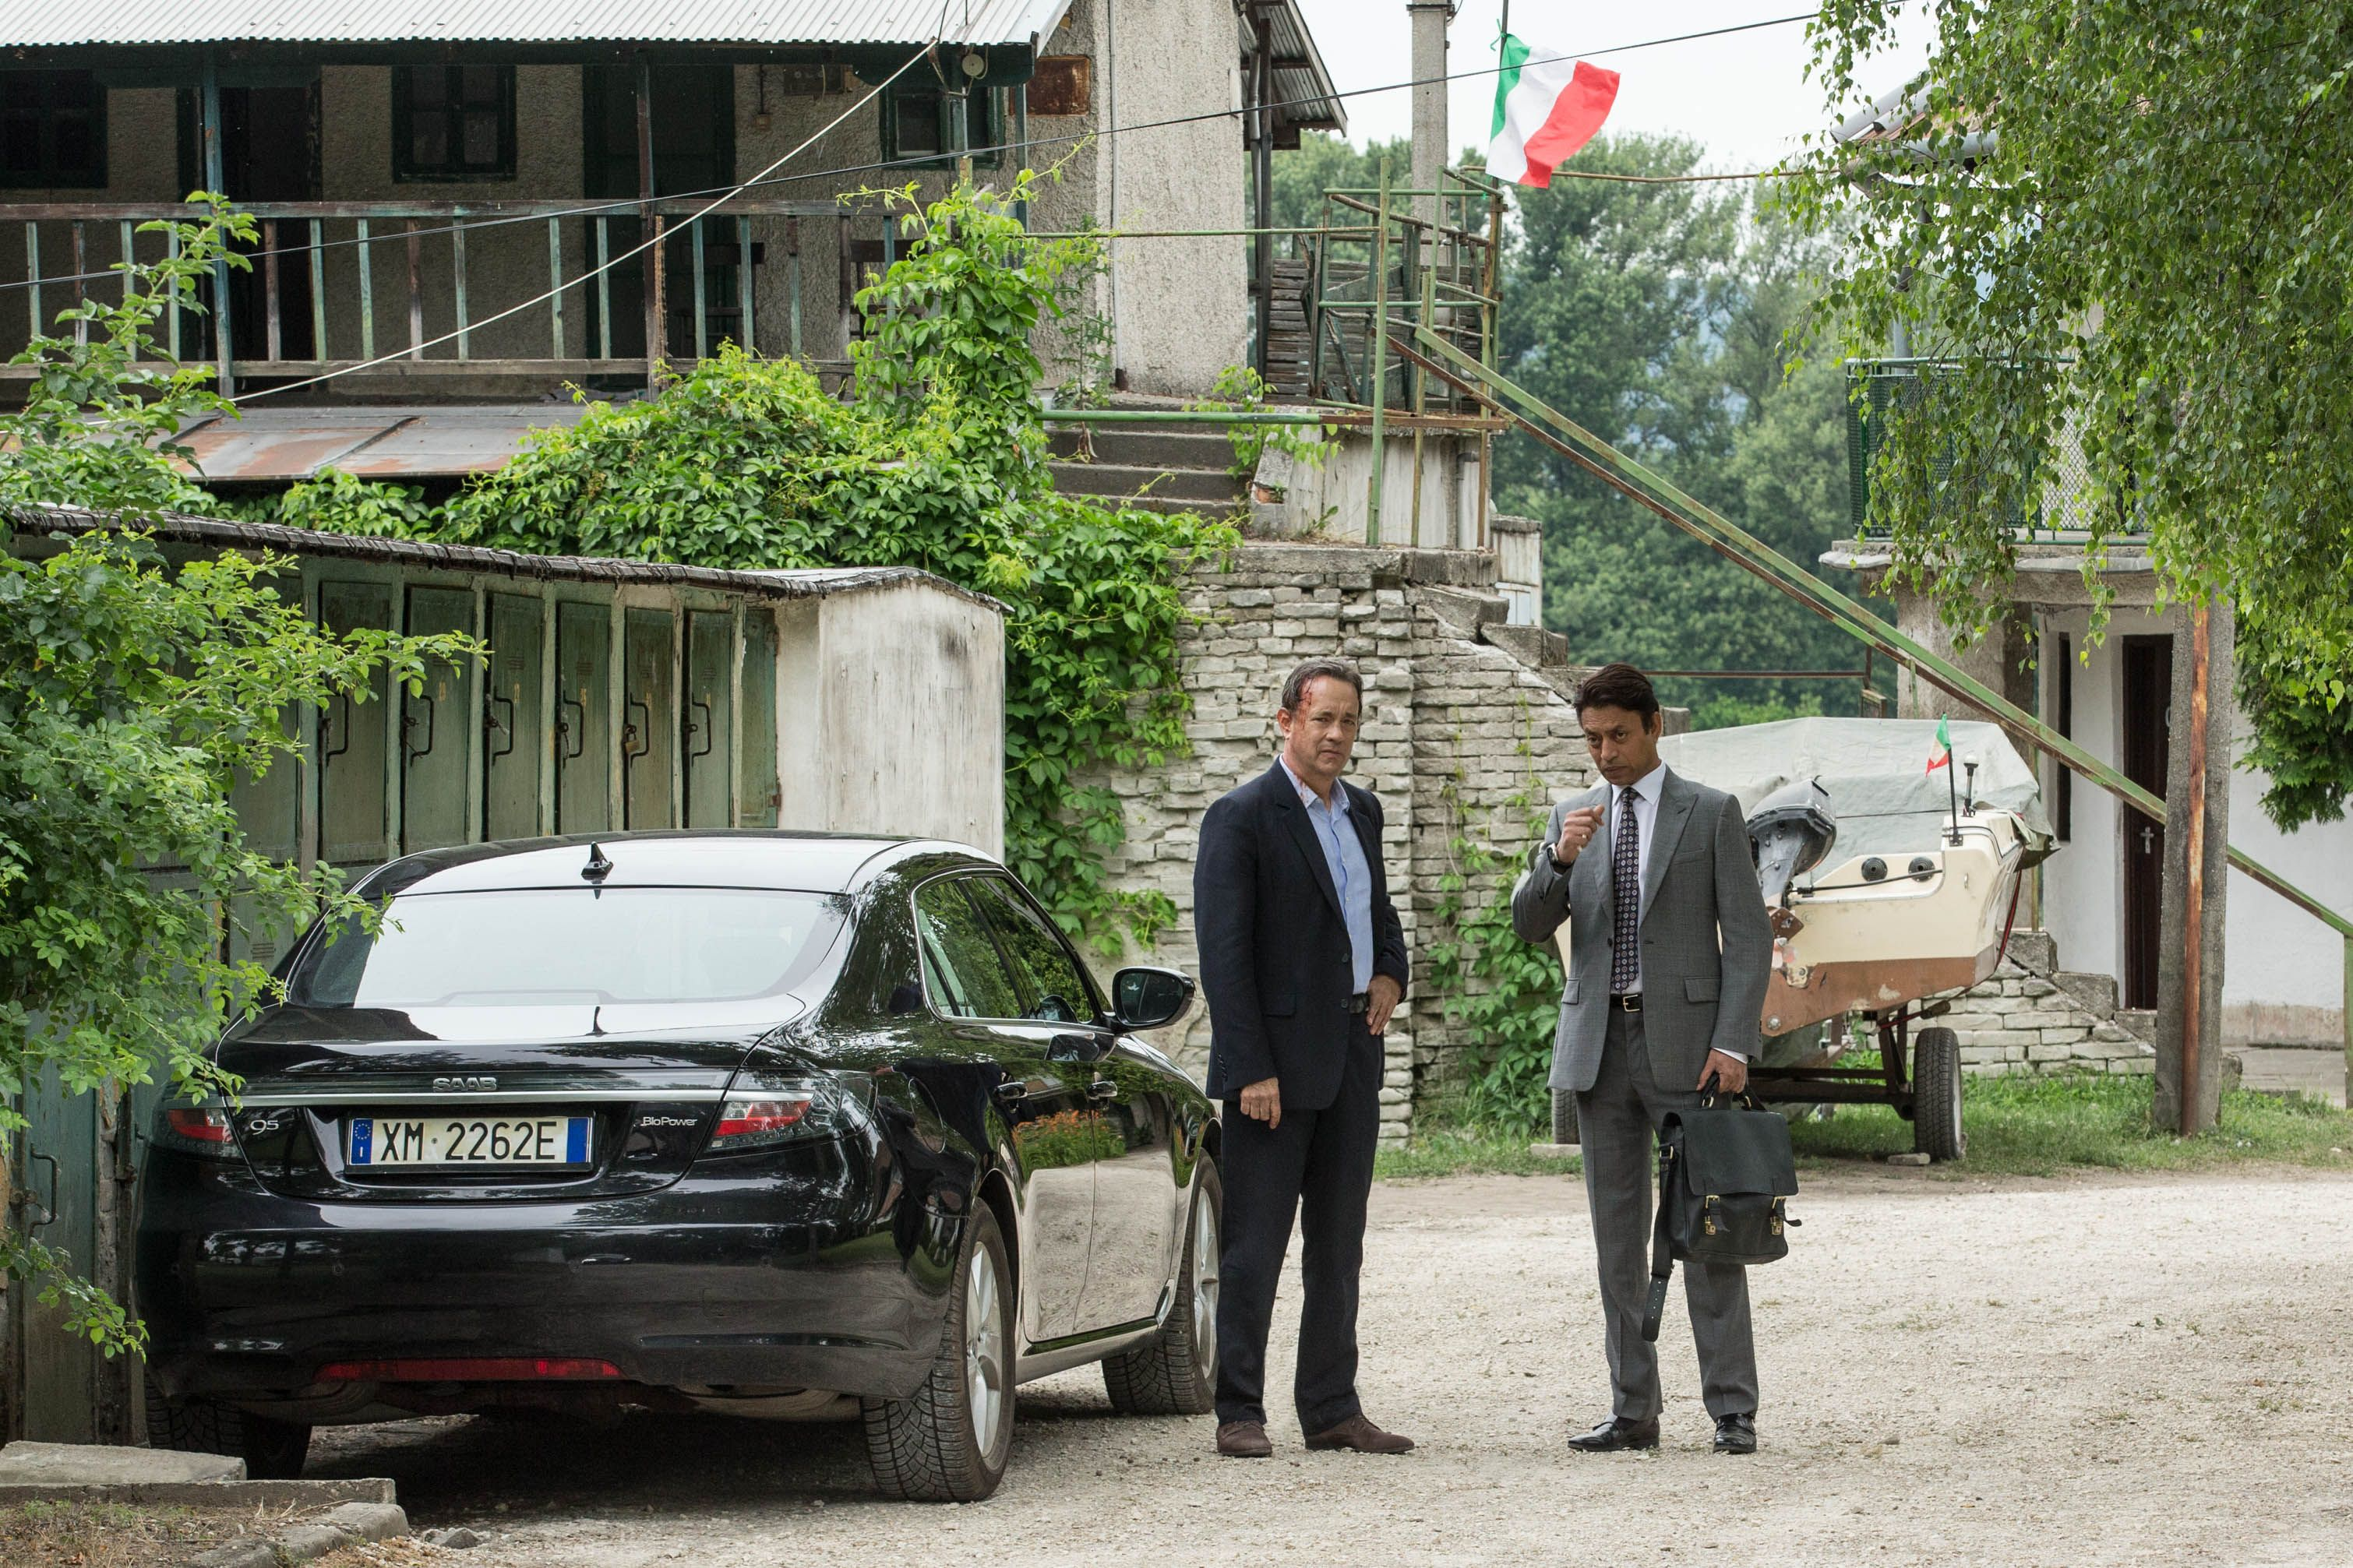 inferno-tom-hanks-irrfan-khan.jpg (3020×2013)